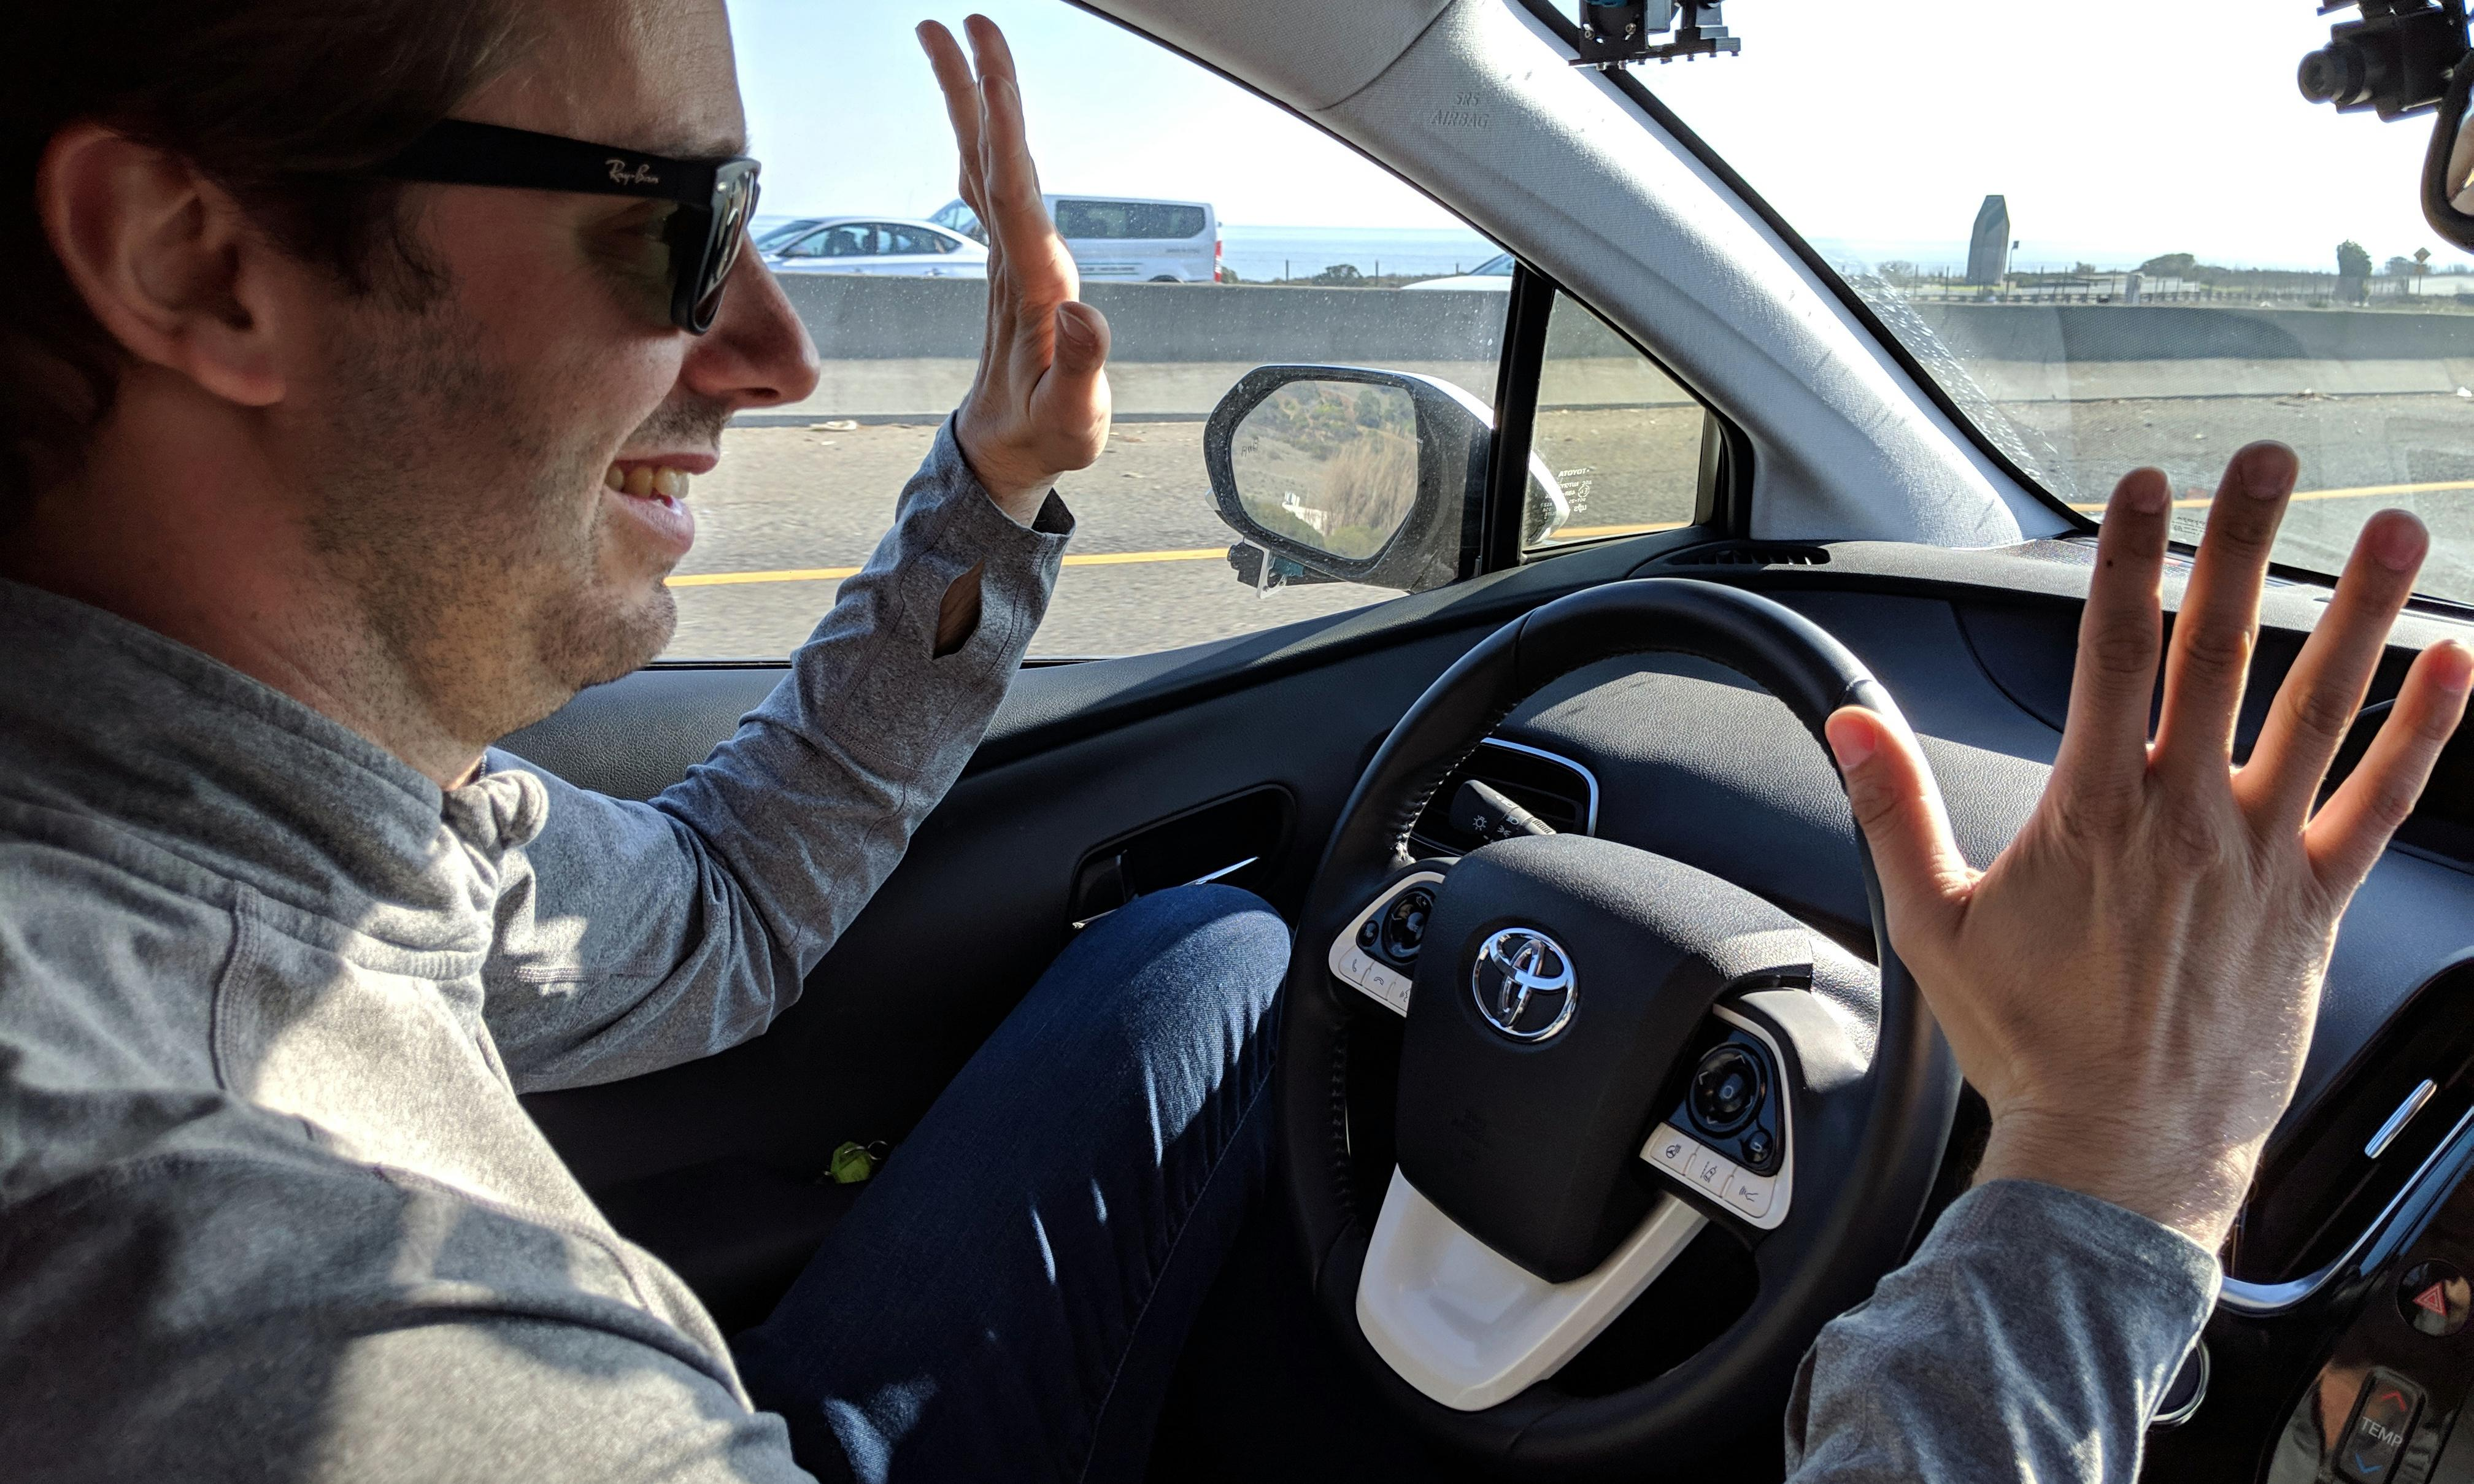 Controversial engineer: I travelled over 3,000 miles in a self-driving car